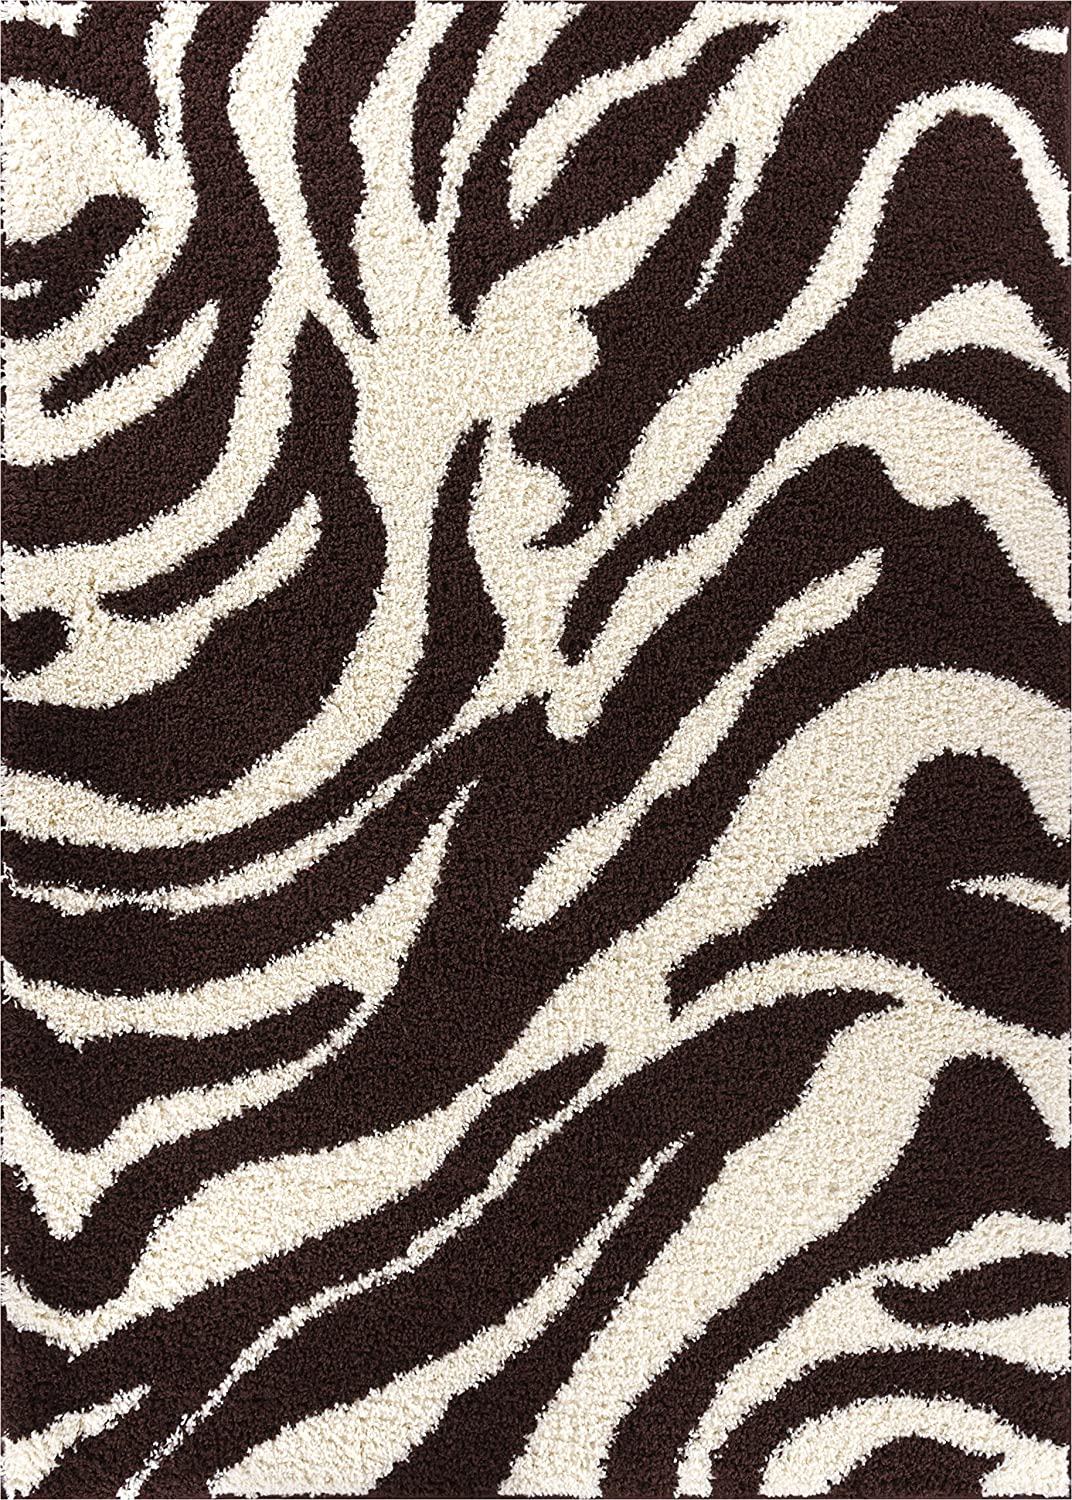 Amazon Com Zebra Shag Brown Ivory Plush Modern Animal Print 2x3